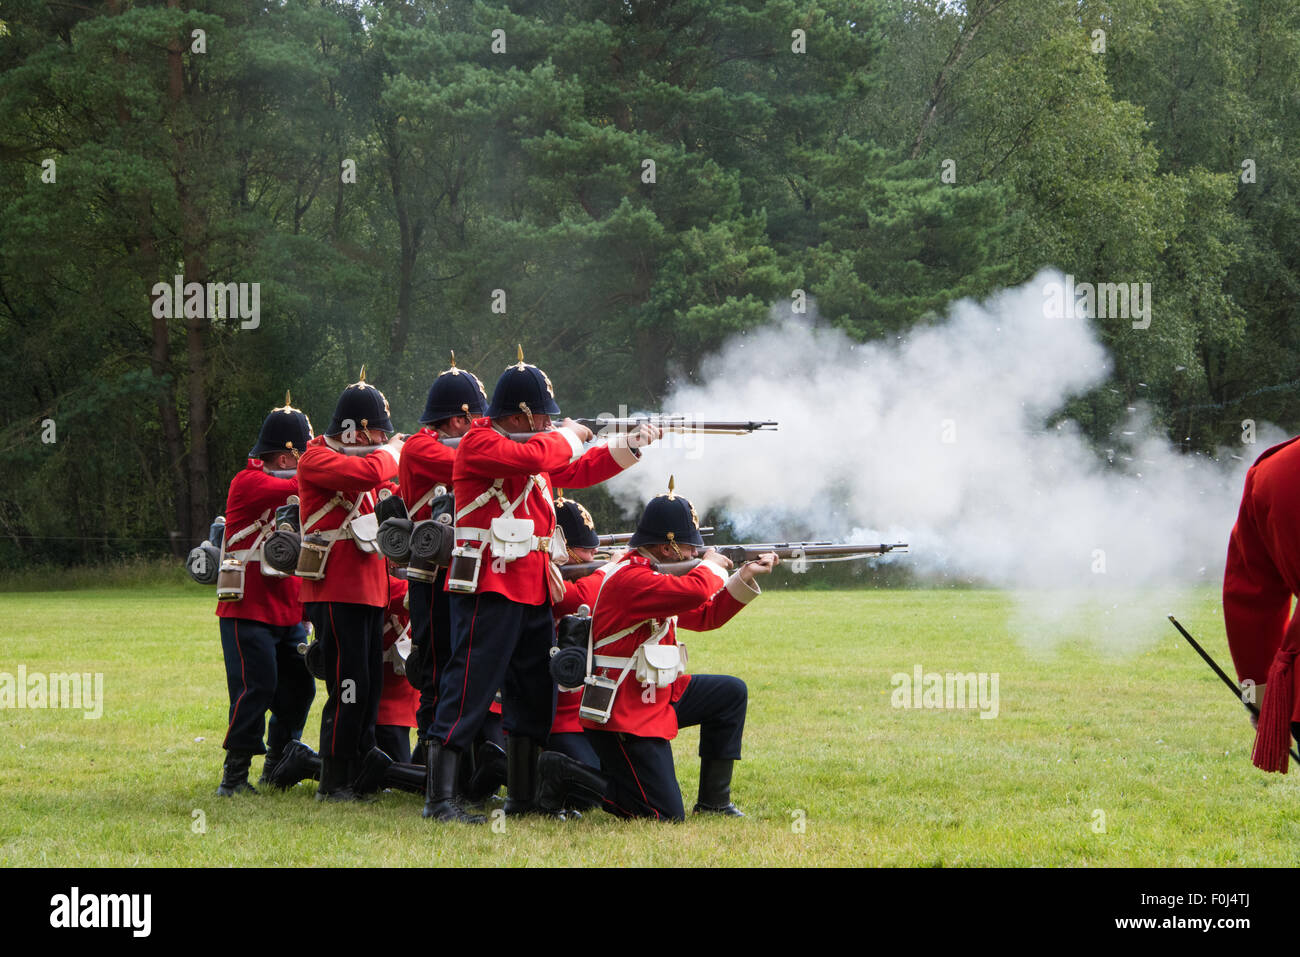 1715 Queens regiment English Soldiers from the Jacobite era putting on a display at Cannock Chase Visitor Centre Stock Photo